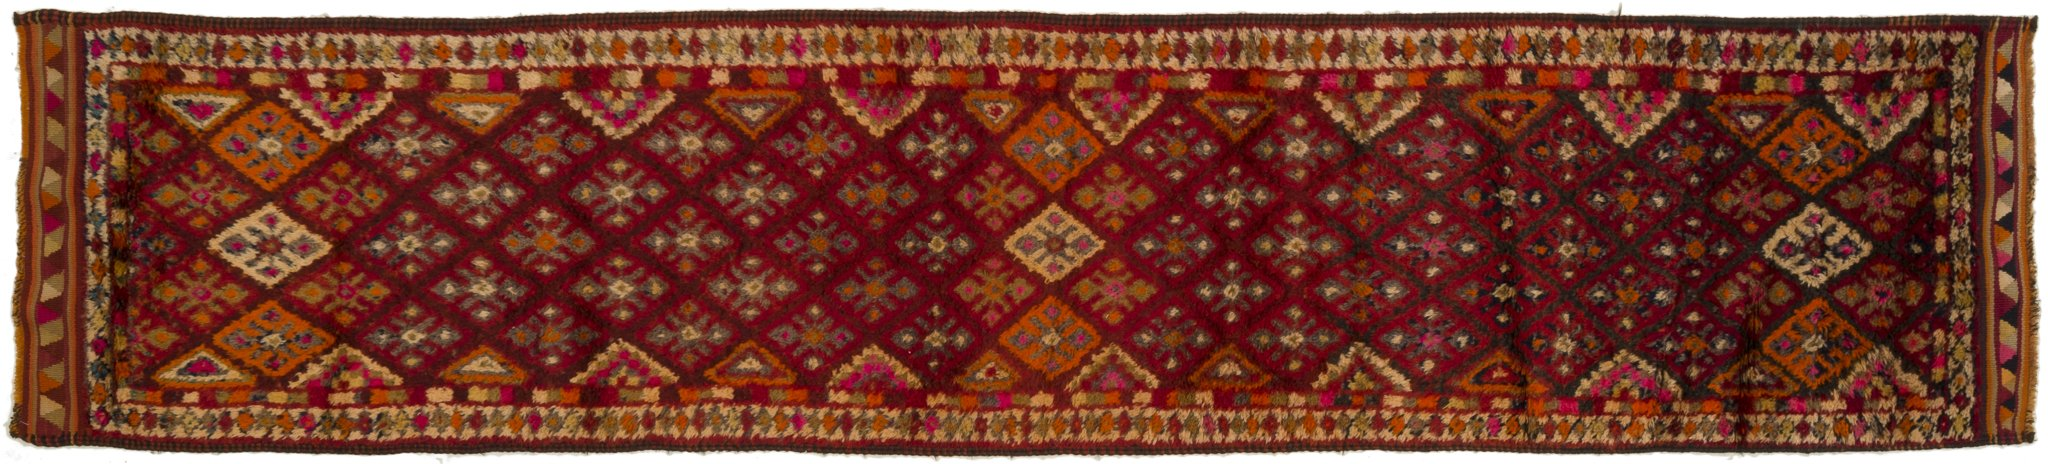 Vintage Turkish Runner Rug Gharib